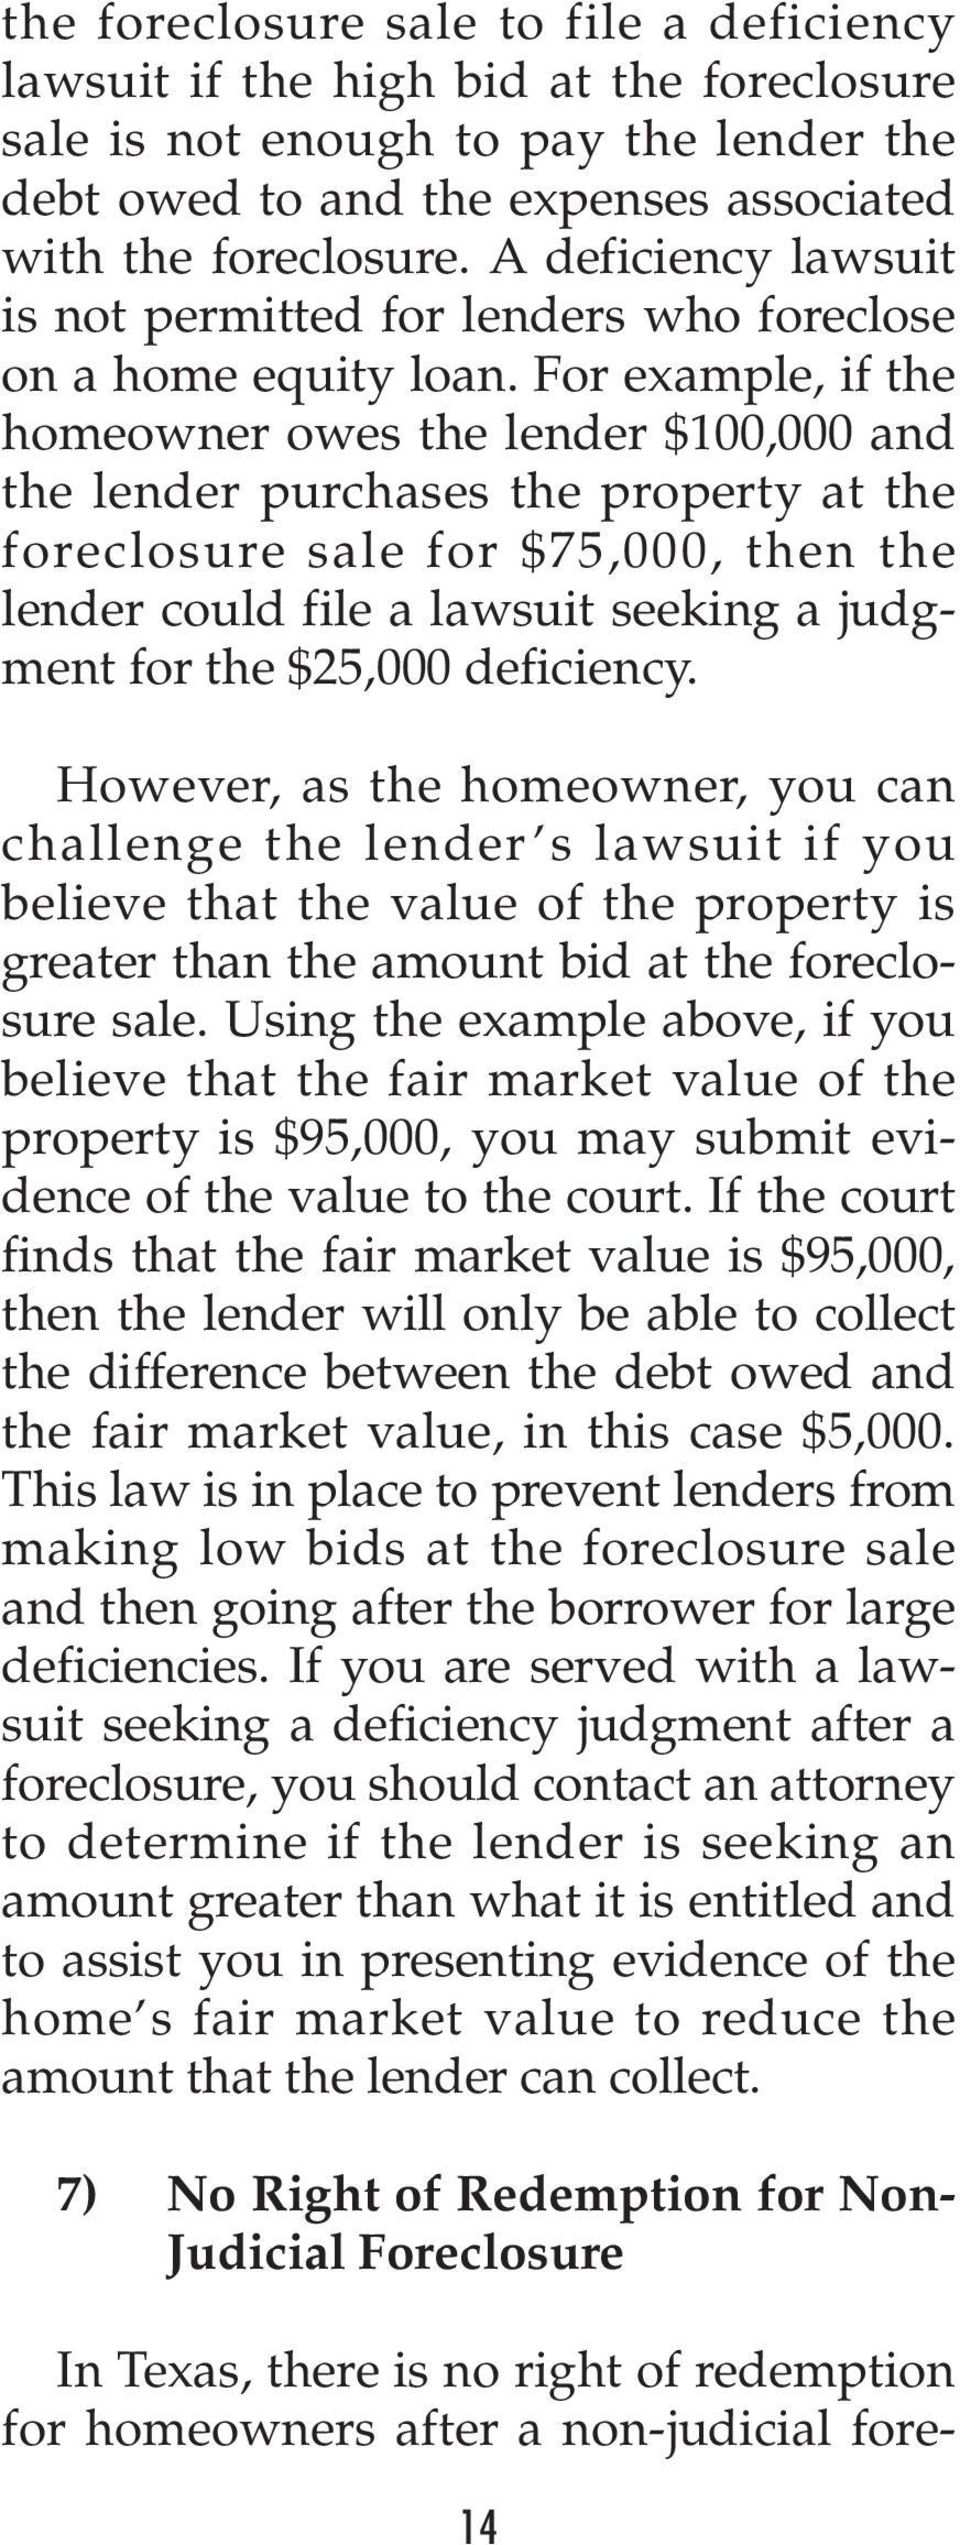 For example, if the homeowner owes the lender $100,000 and the lender purchases the property at the foreclosure sale for $75,000, then the lender could file a lawsuit seeking a judgment for the